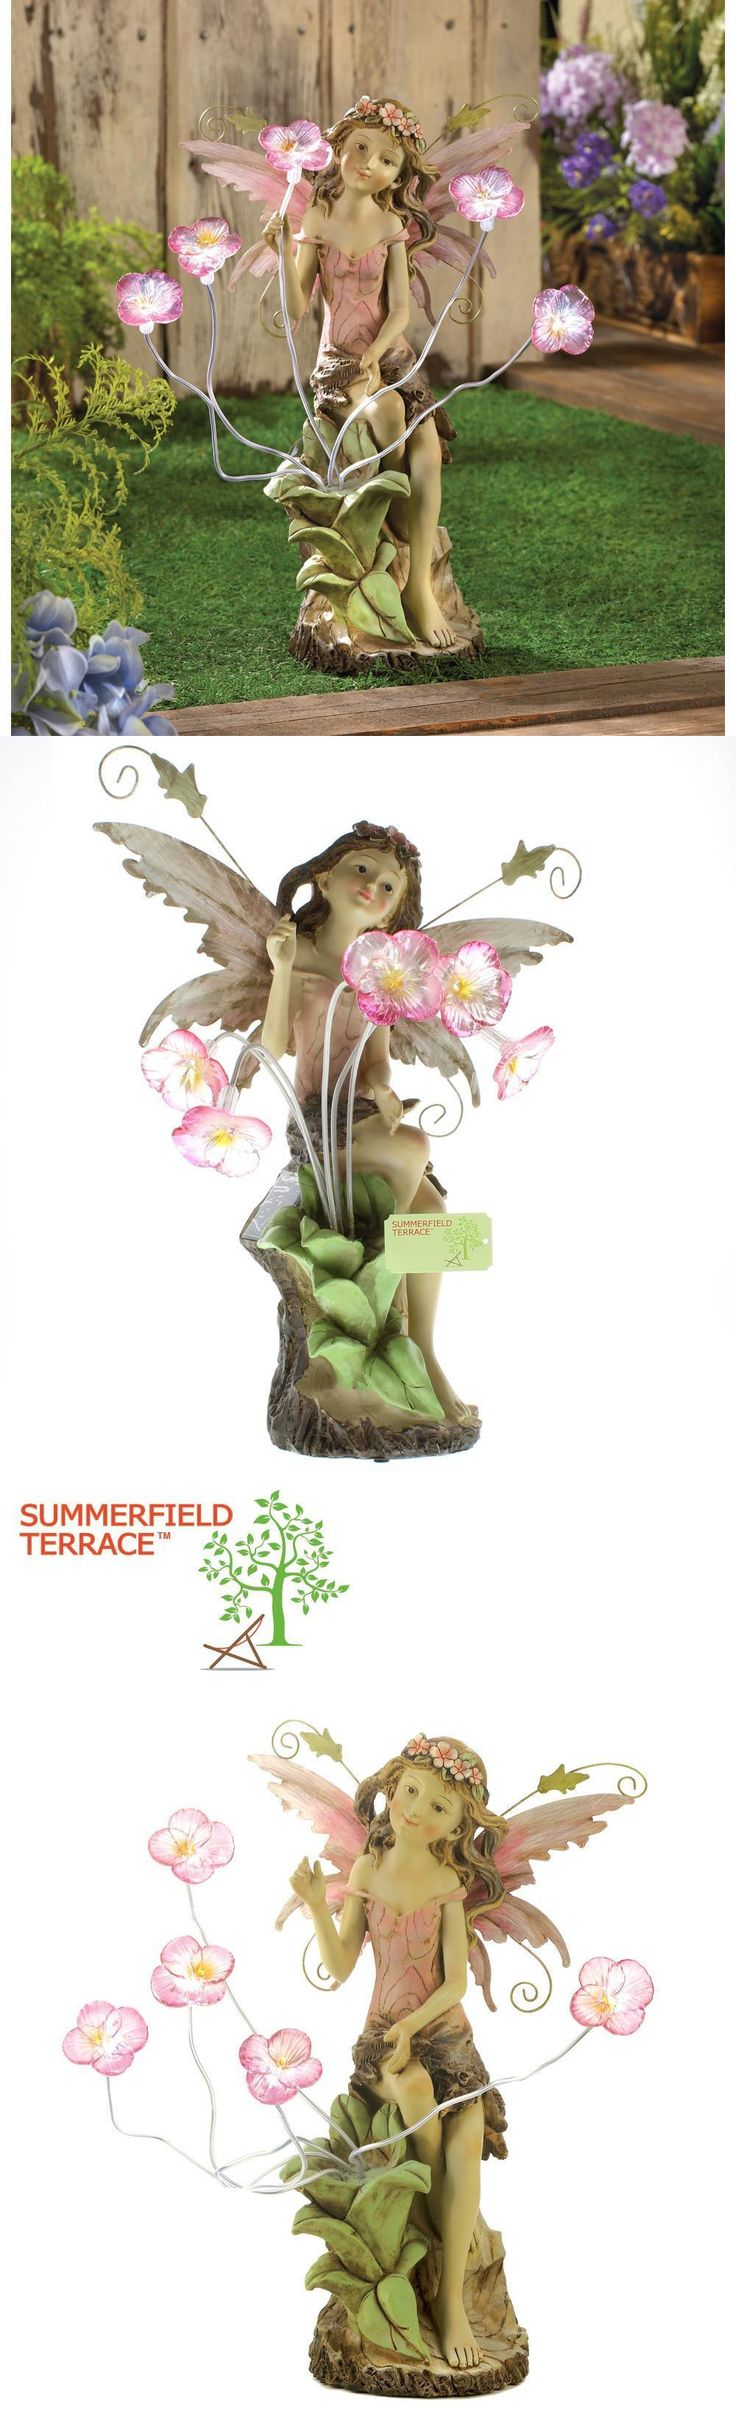 Fairy lawn ornaments - Statues And Lawn Ornaments 29511 Fairy With Solar Panel Led Light Peony Flower Statue Garden Yard Decor 13915 Buy It Now Only 41 79 On Ebay